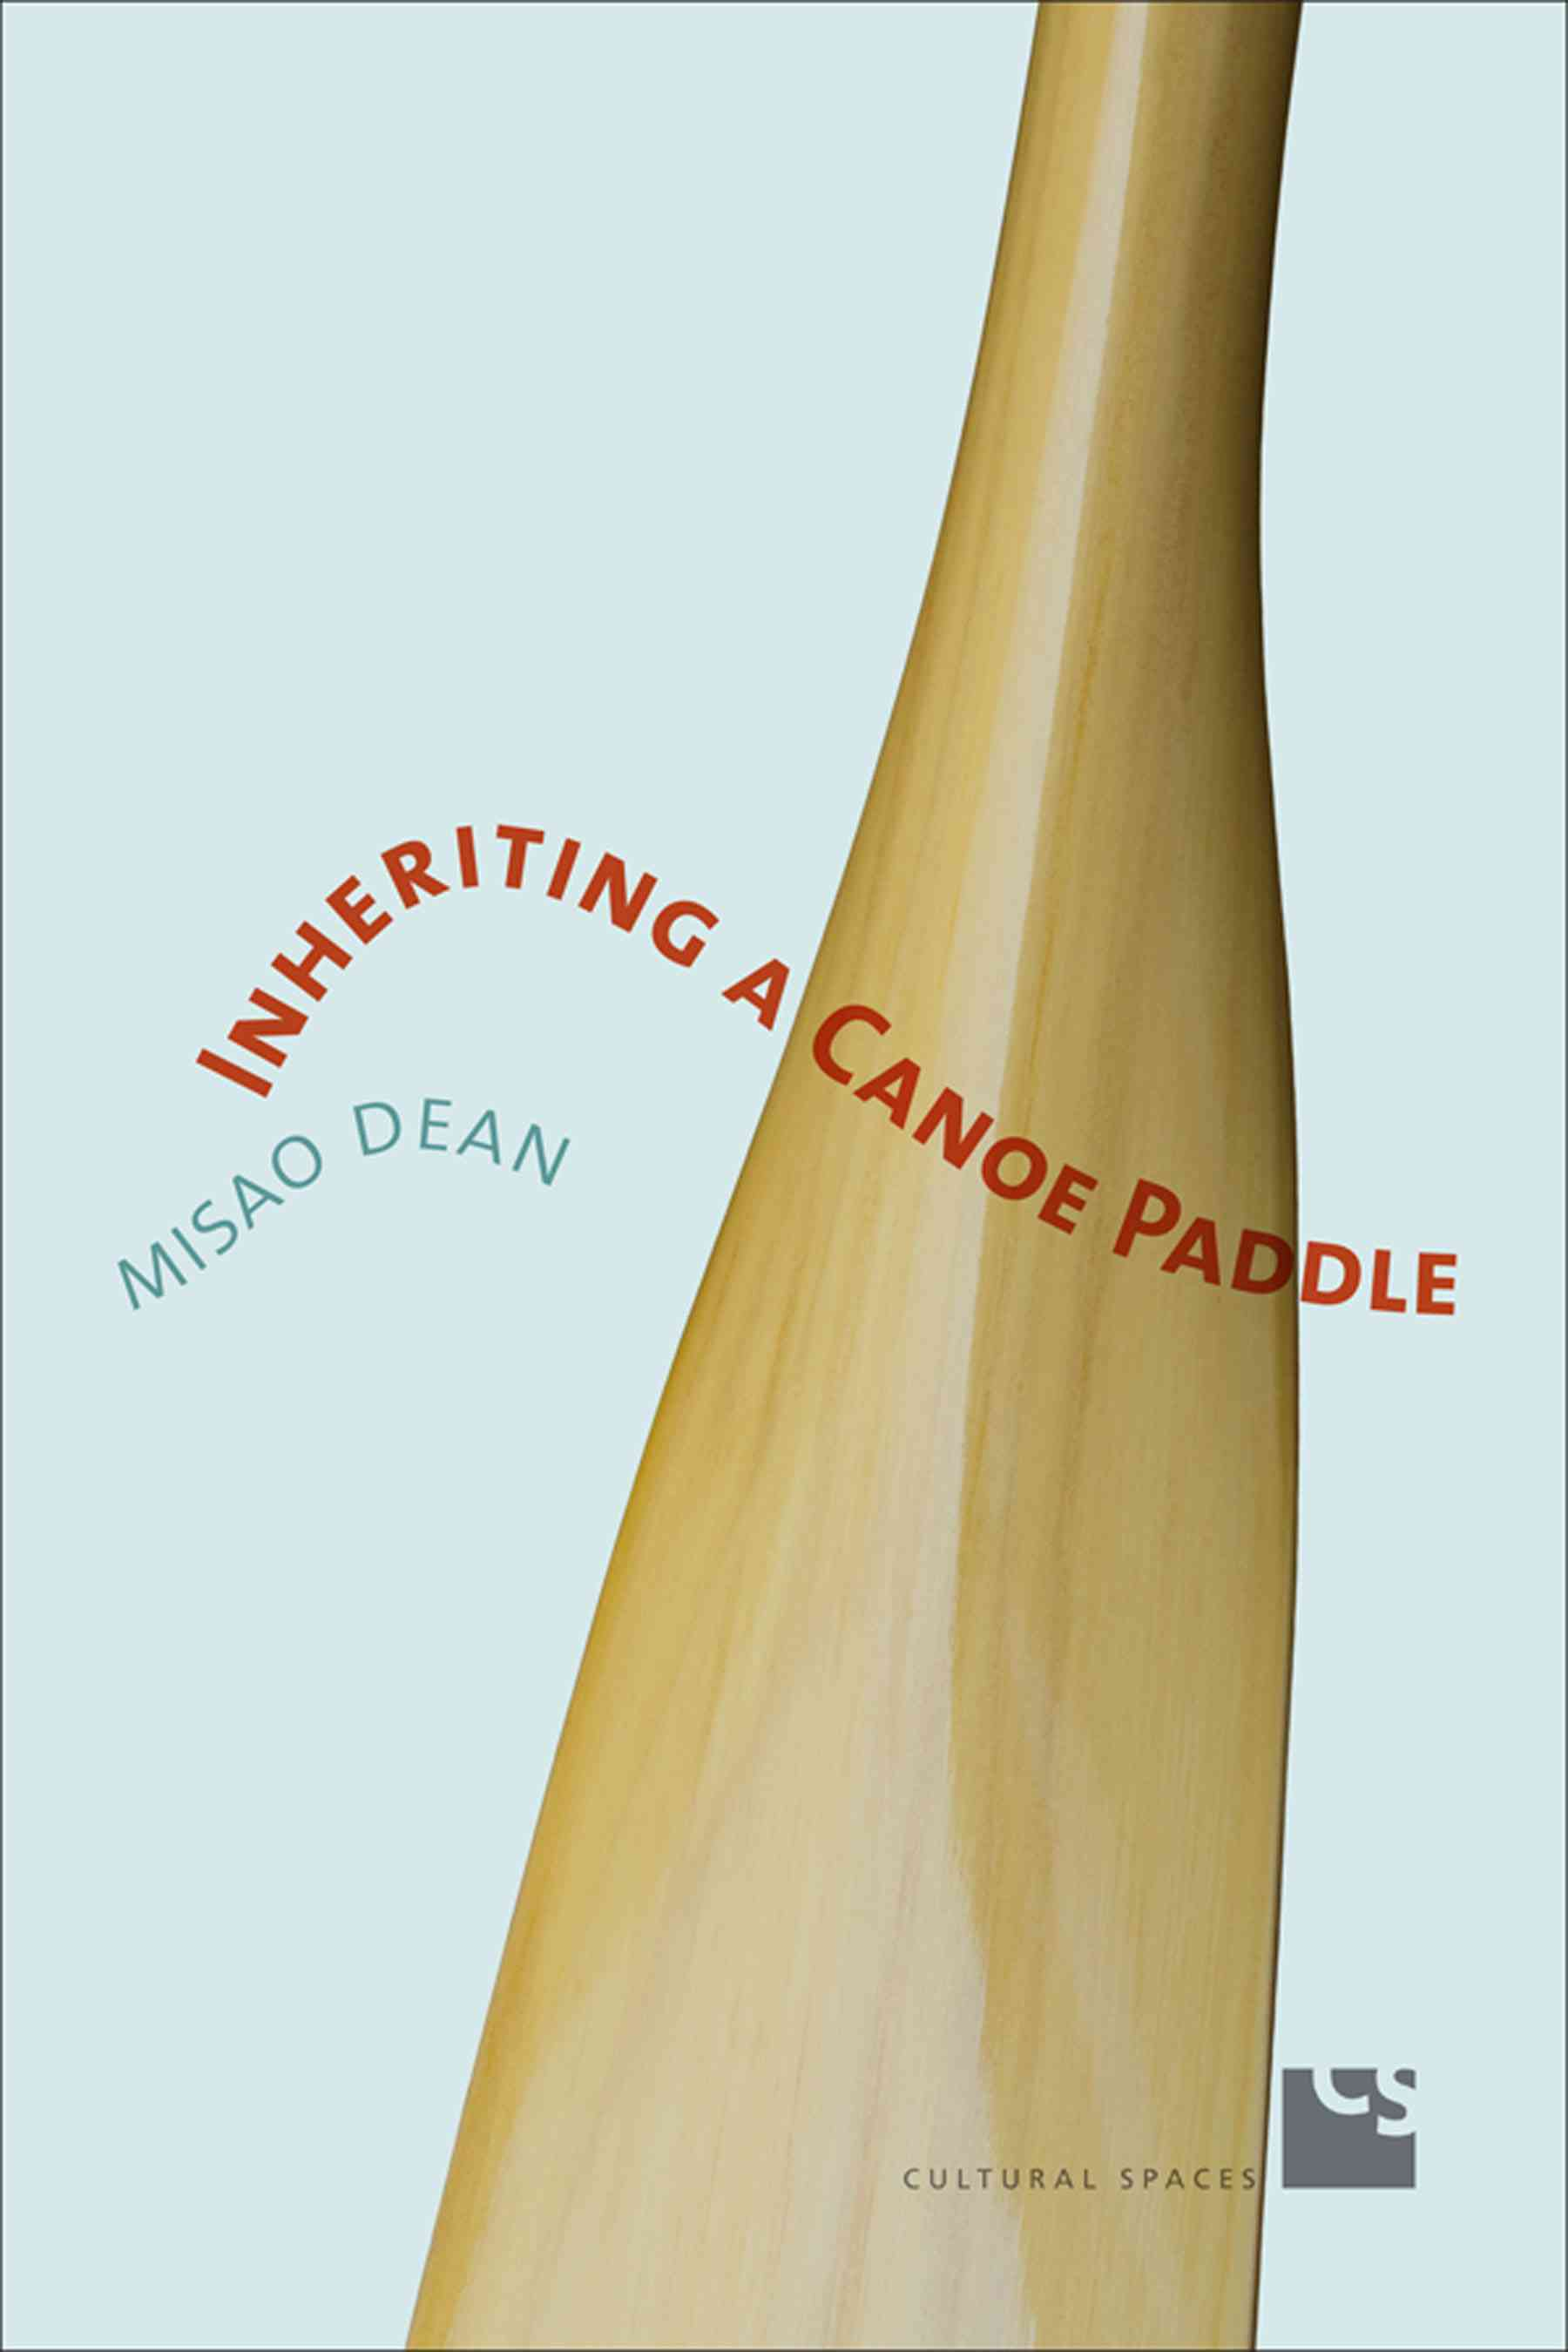 Inheriting a Canoe Paddle: The Canoe in Discourses of English-Canadian Nationalism (Paperback)